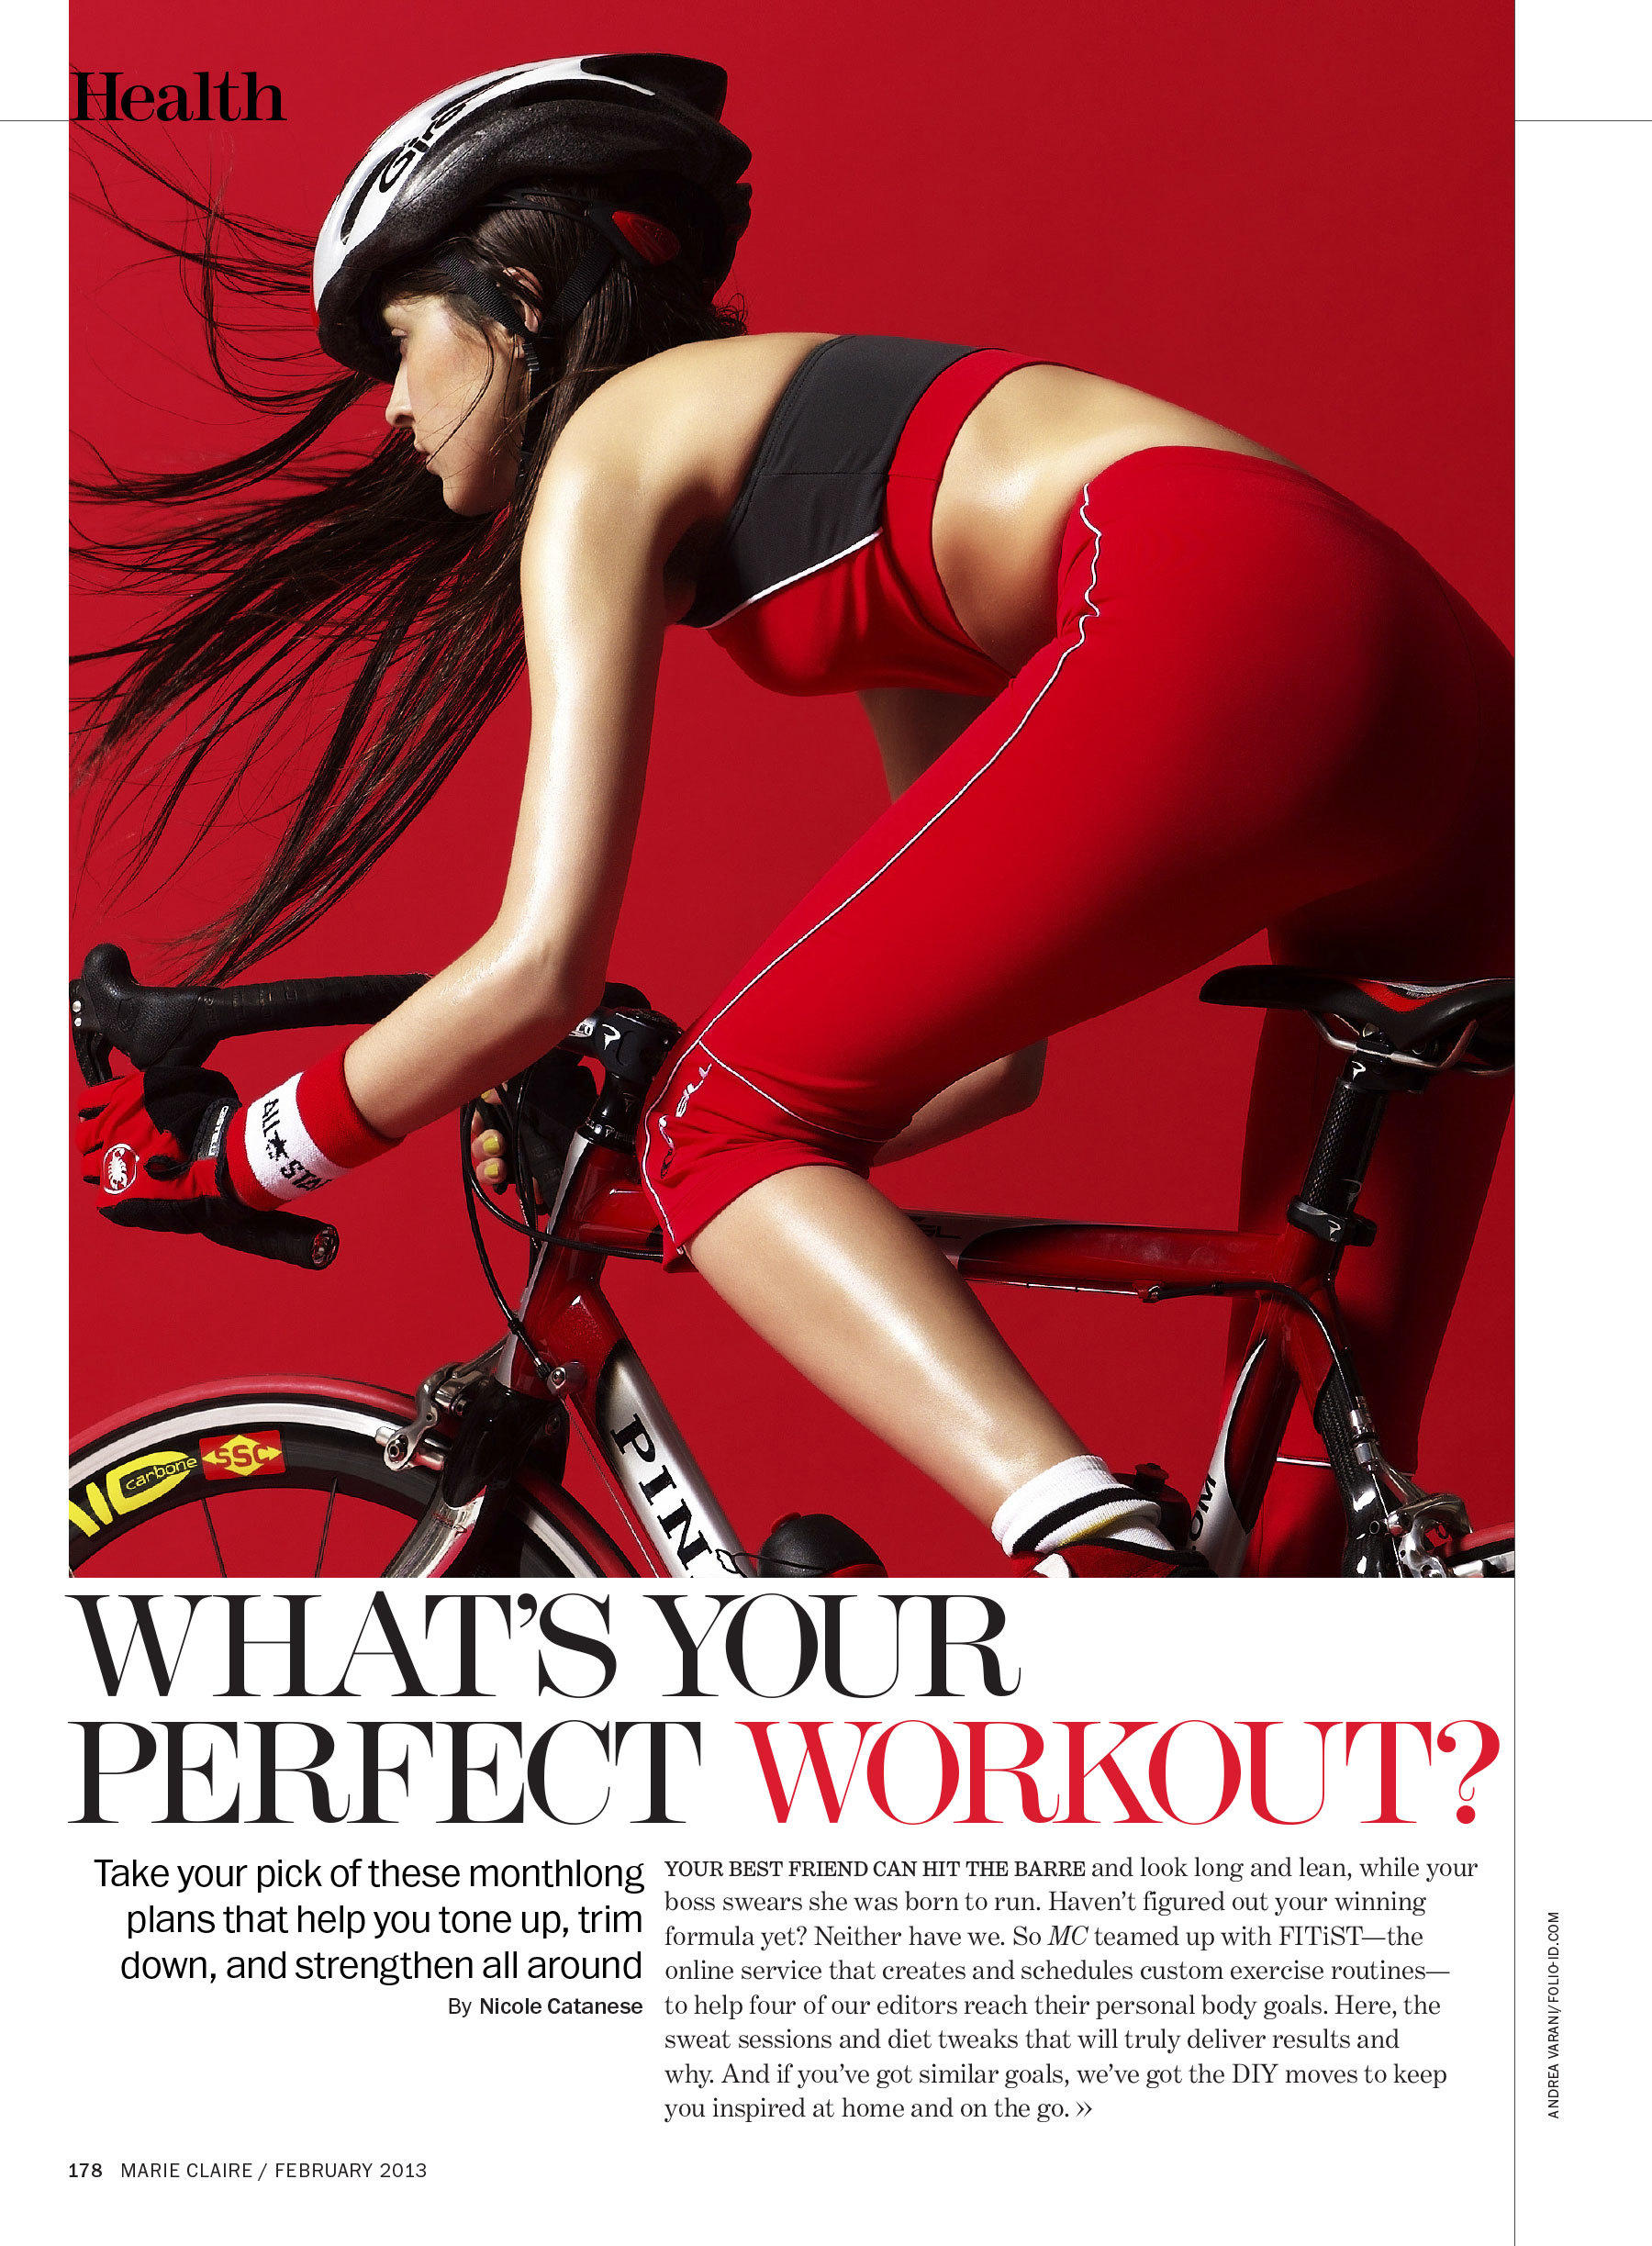 NicoleCatanese_MarieClaire_WhatsYourPerfectWorkout_A.jpg